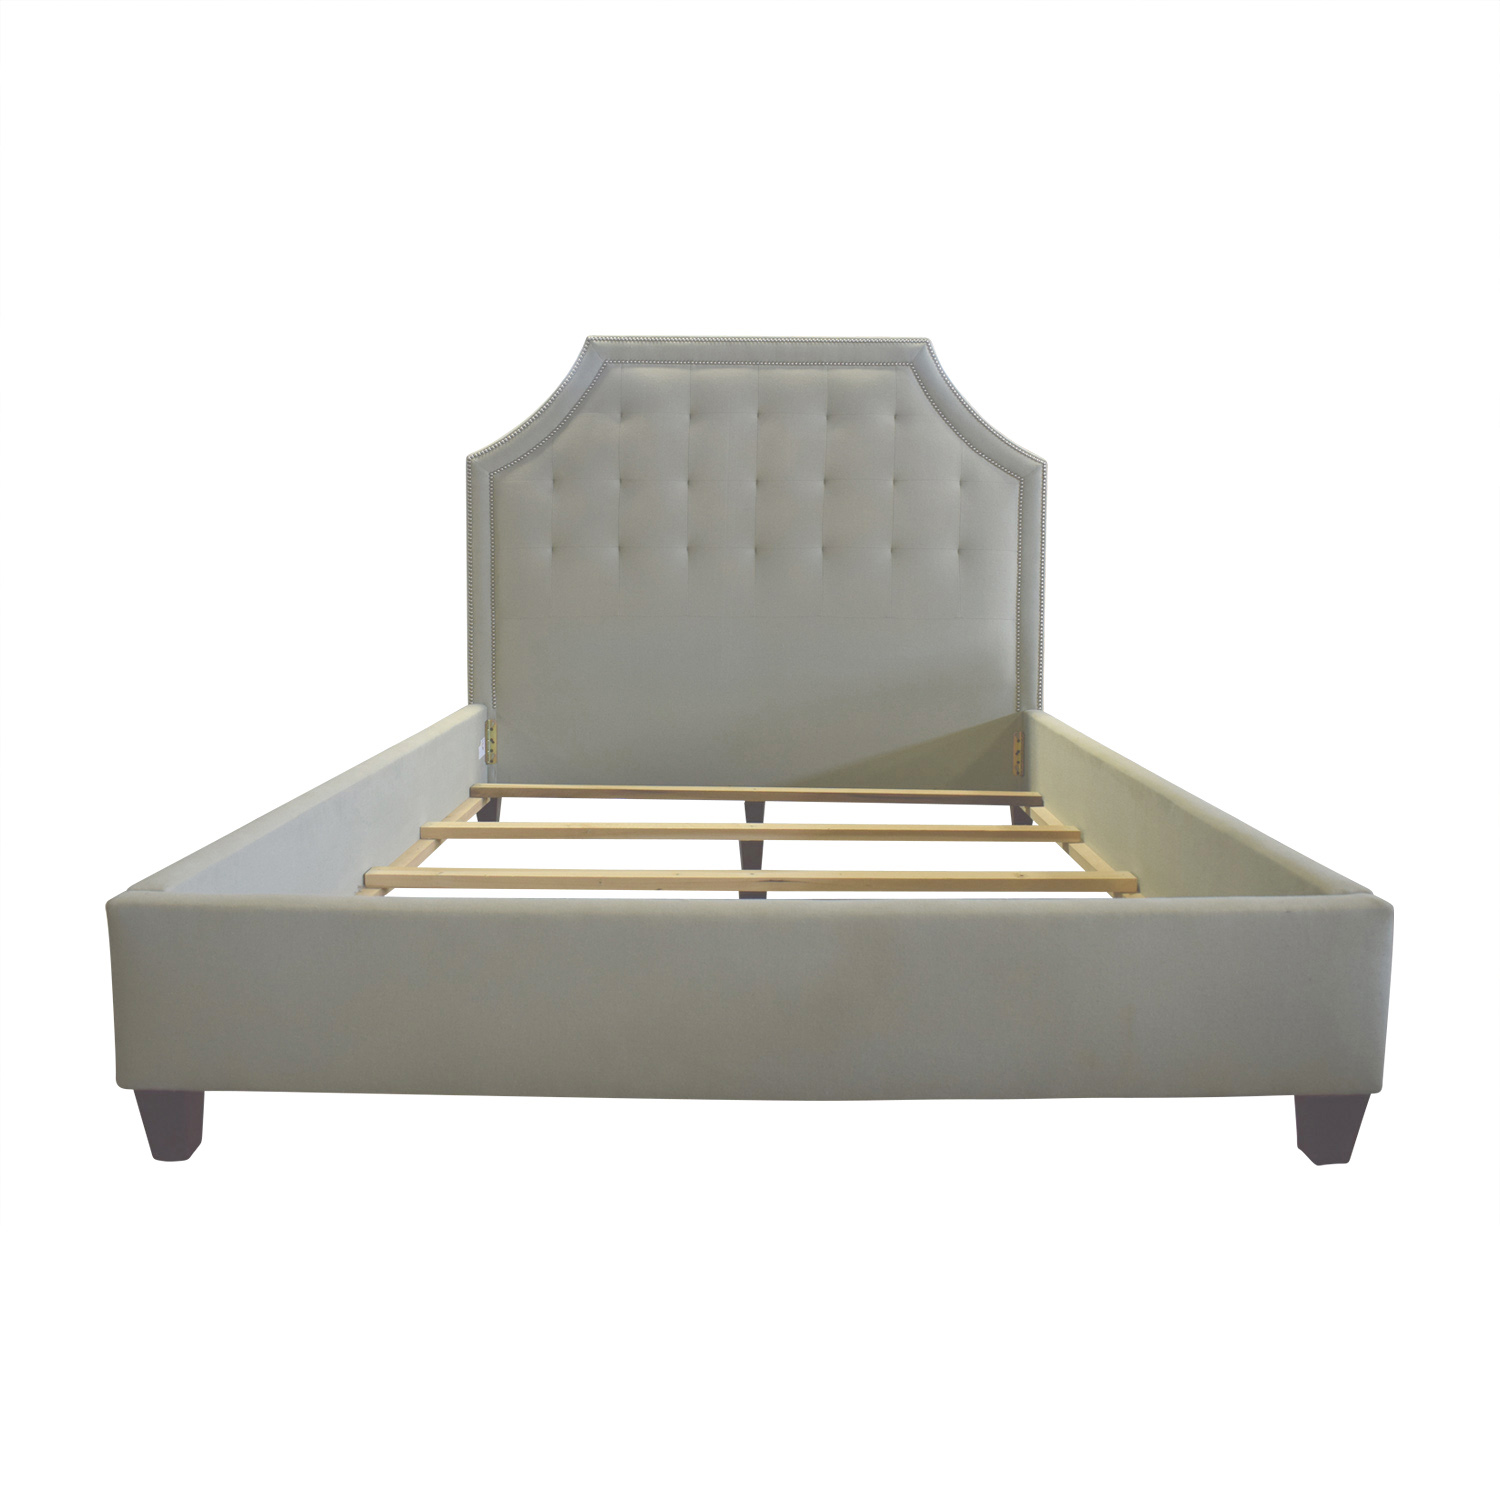 Arhaus Arhaus Vintage Light Green Semi Tufted Nailhead Queen Bed Frame on sale